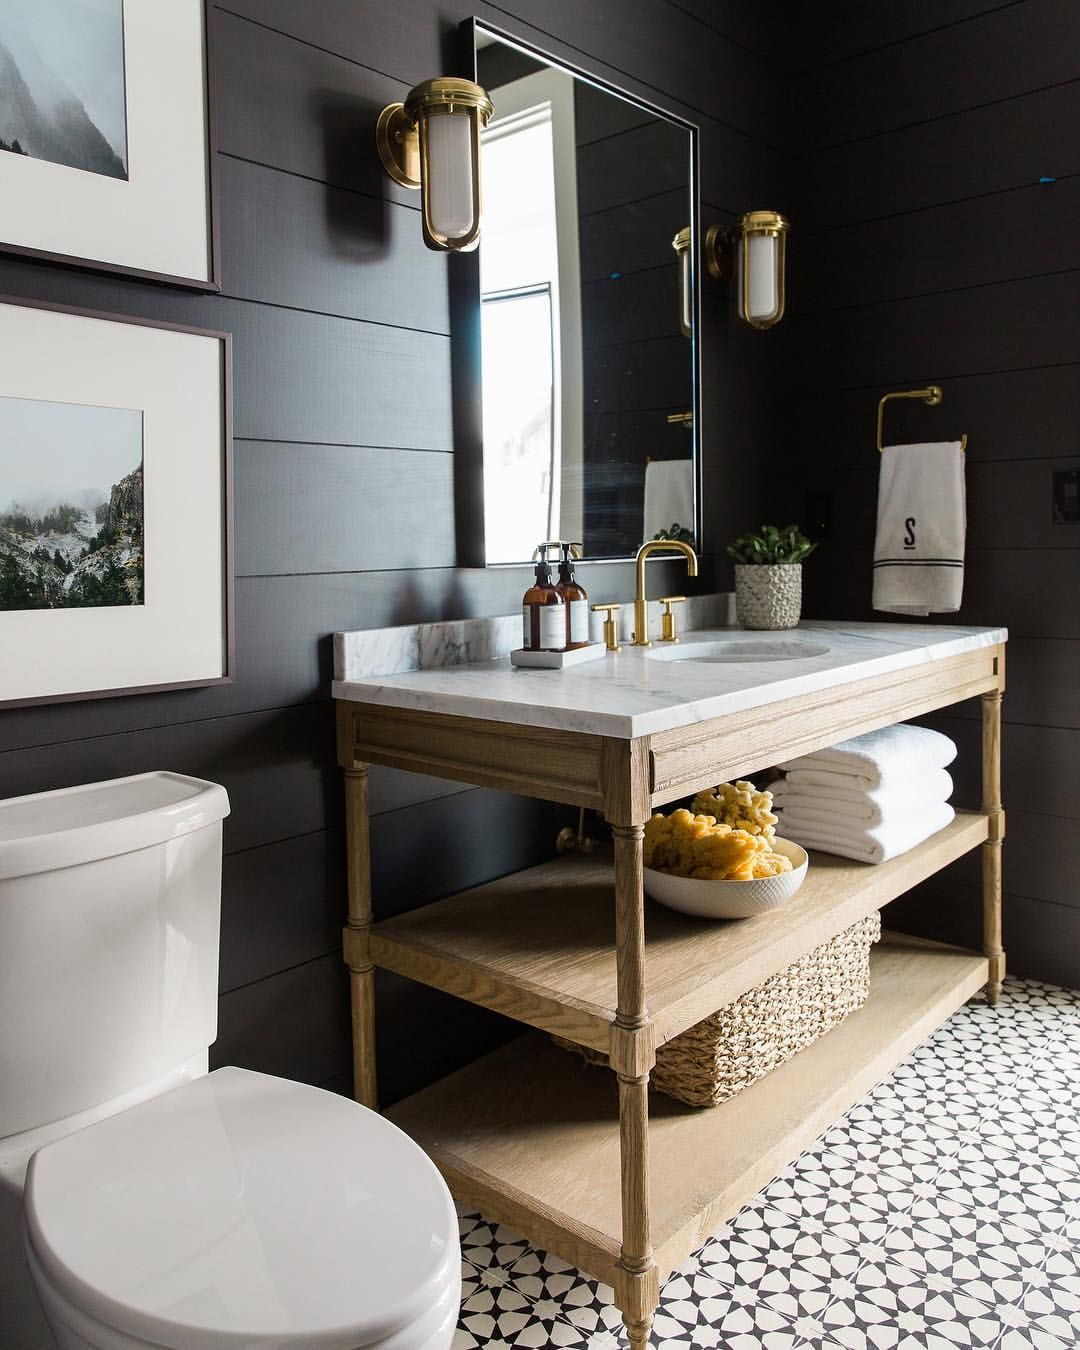 2 447 Likes 32 Comments Studio Mcgee Studiomcgee On Instagram We Re Sharing Our Favorite Freesta Bathroom Interior Small Space Bathroom Bathroom Design